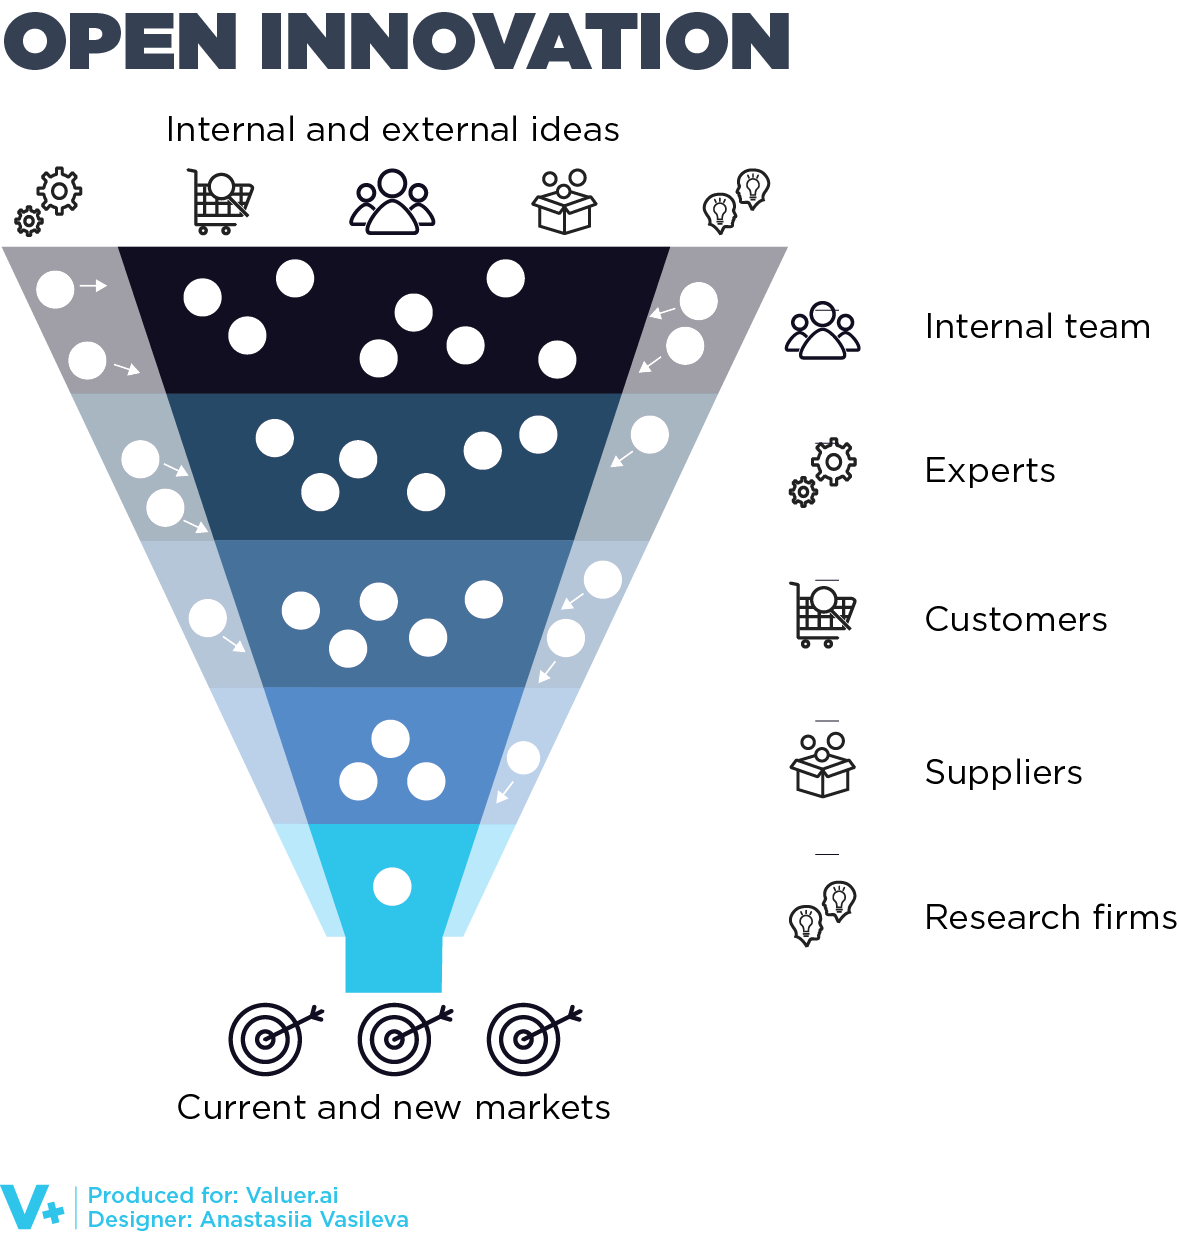 a graphic depicting the structure of open innovation within companies